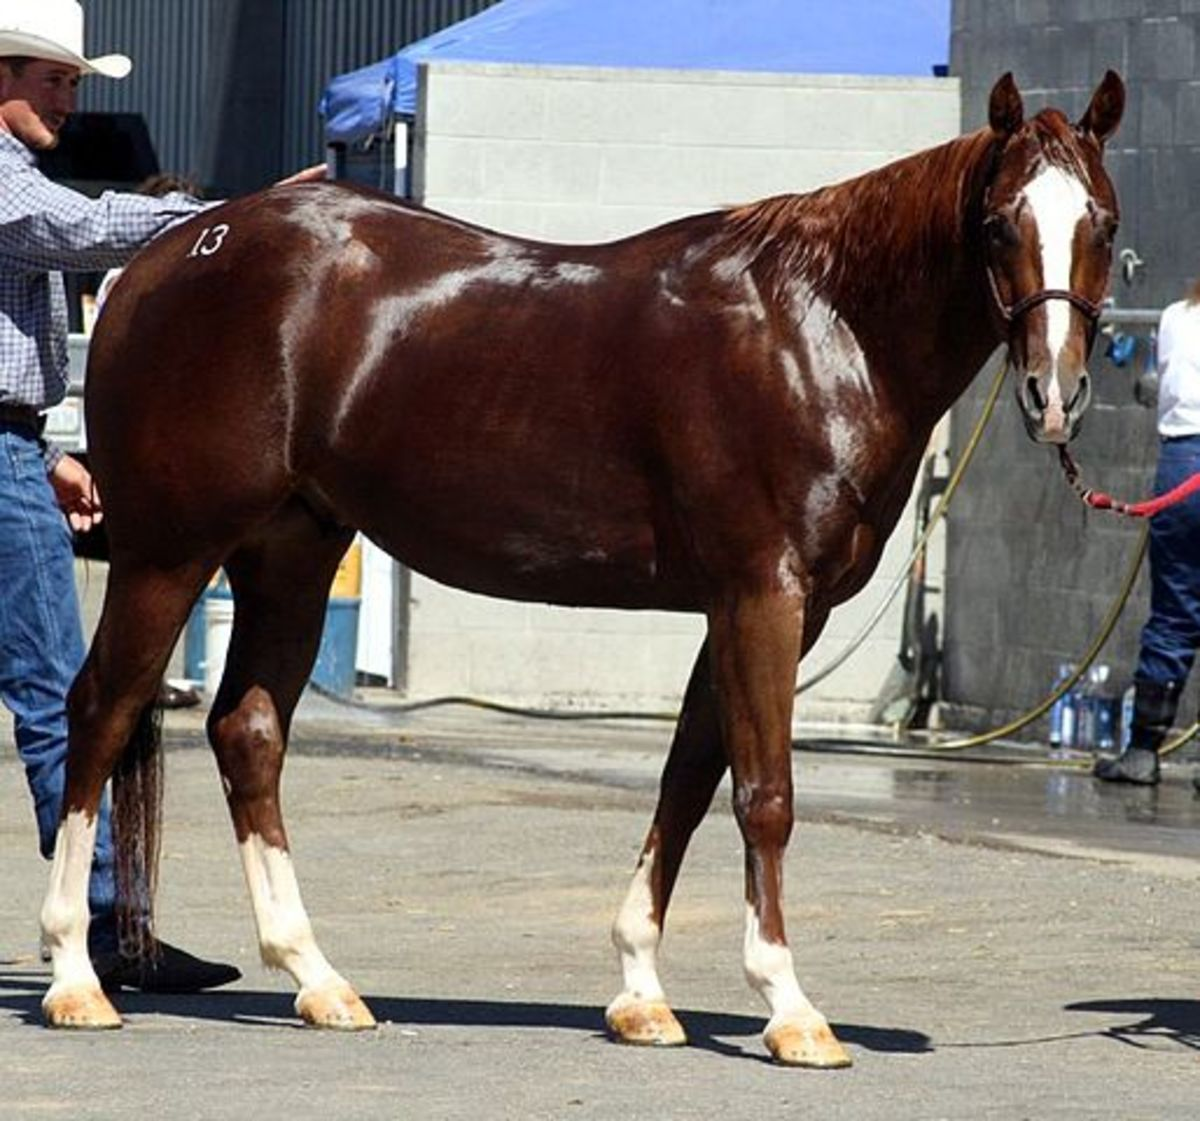 American Quarter horses are an all-American horse that makes a great pet or a fantastic race horse